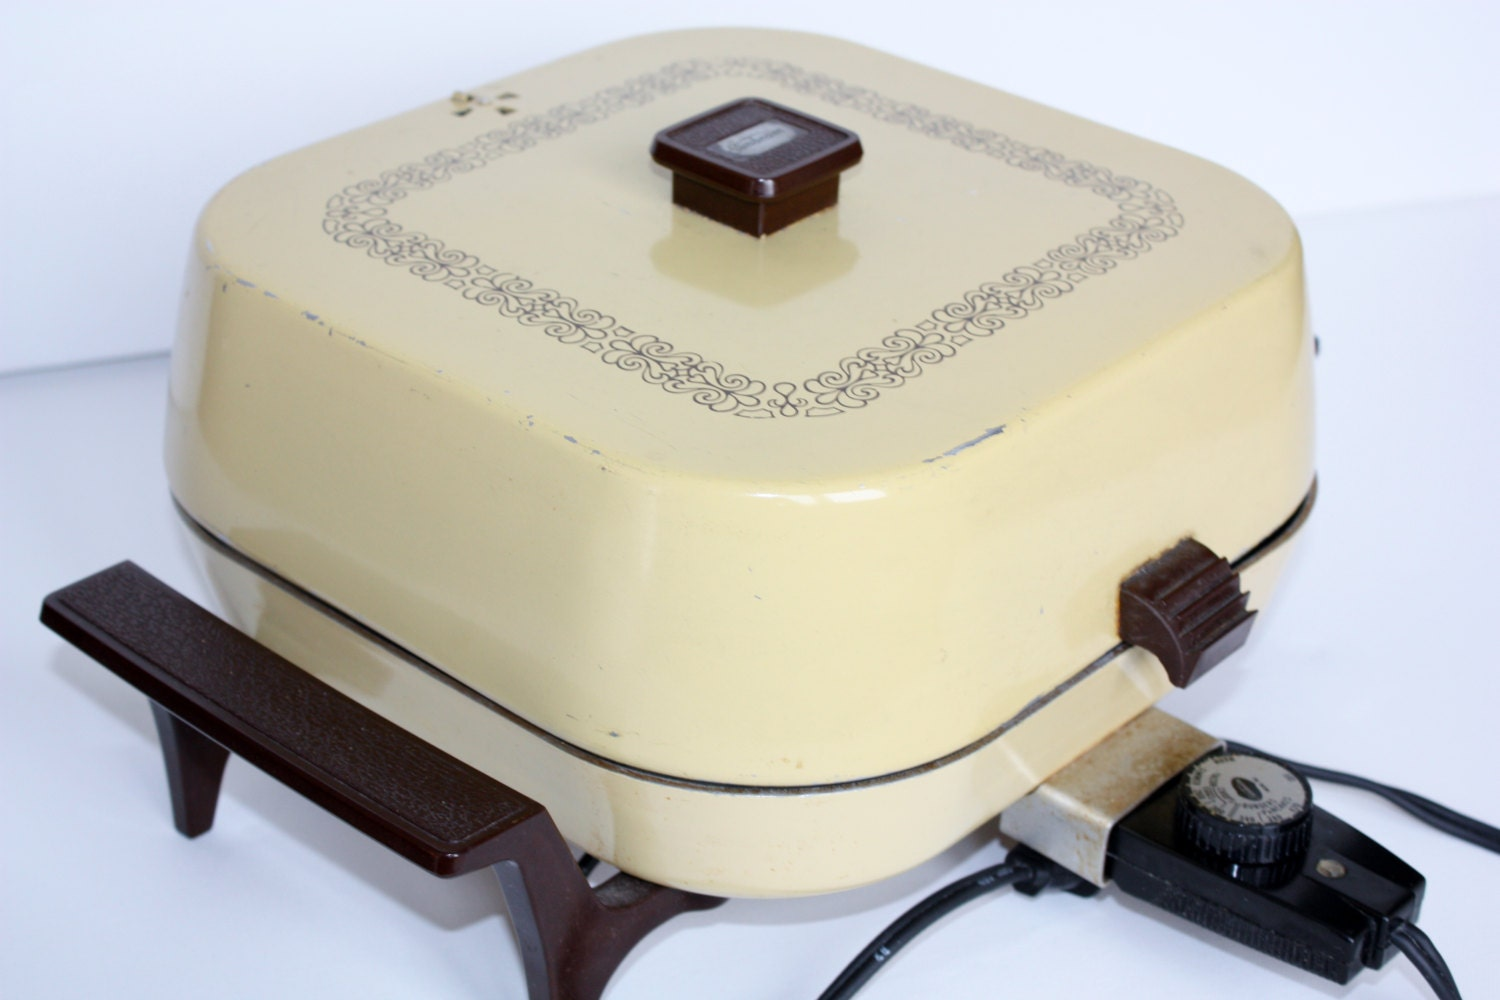 Vintage Sunbeam 11 Non Stick Electric Fry By